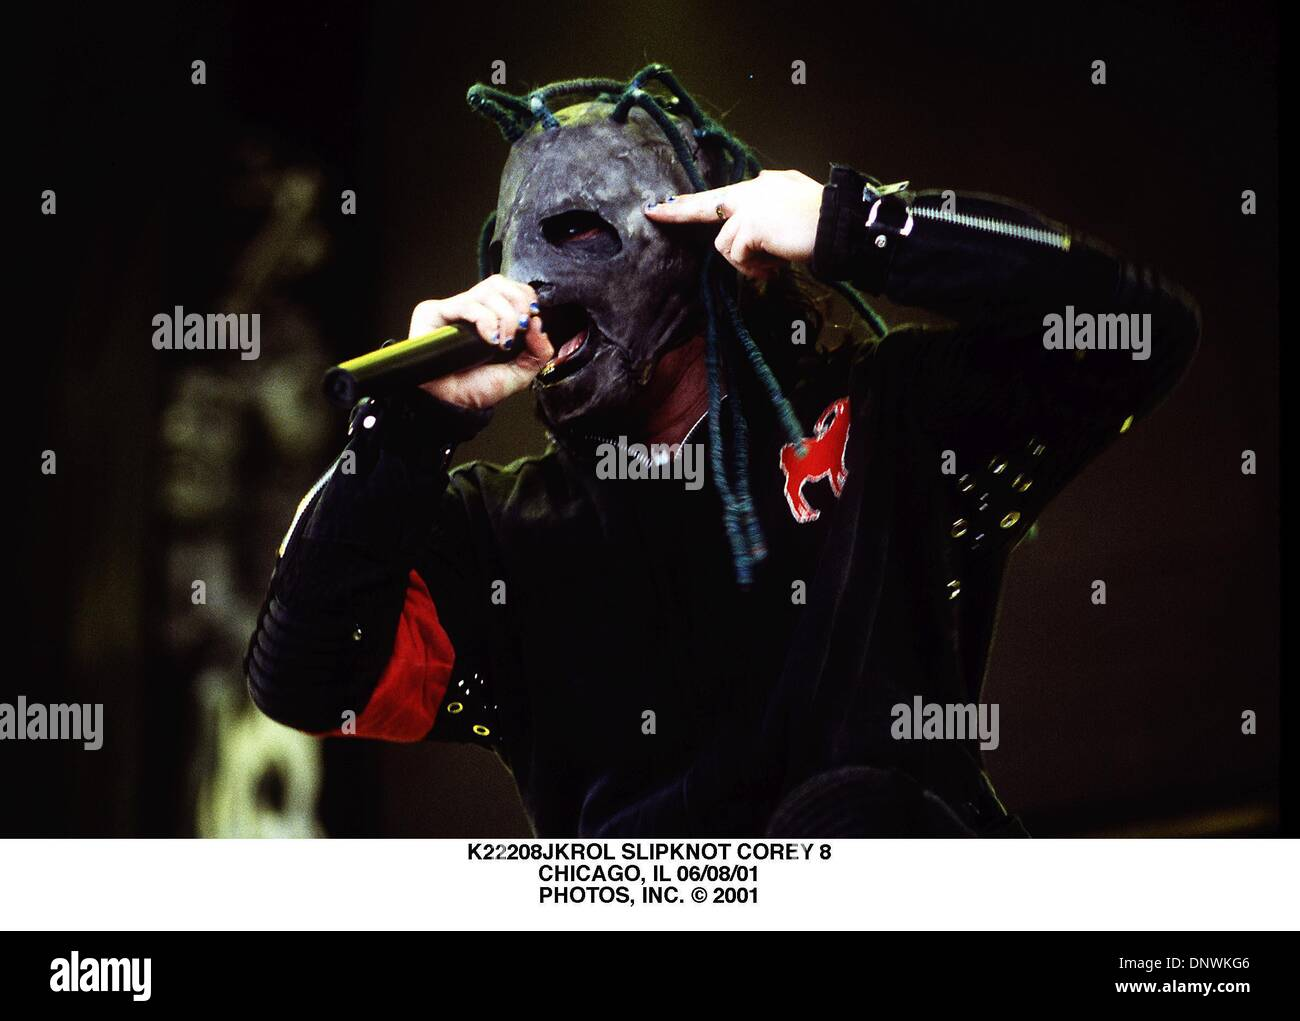 List Of Synonyms And Antonyms Of The Word Slipknot 2001